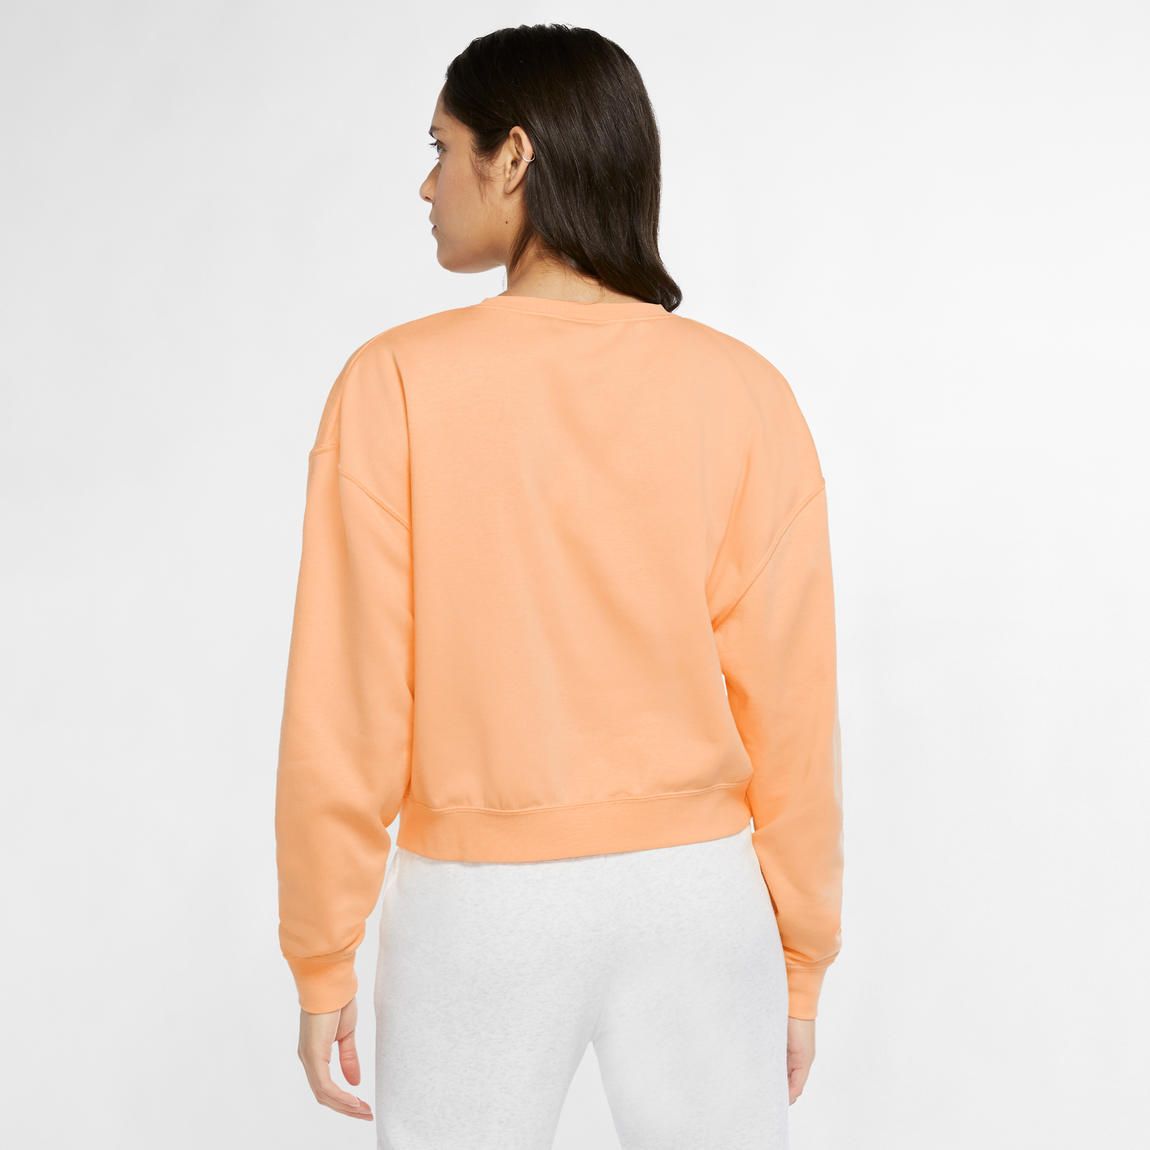 Nike Sportswear Women's Fleece Sweatshirt (Orange Chalk/White-Multi) - Nike Sportswear Women's Fleece Sweatshirt (Orange Chalk/White-Multi) -